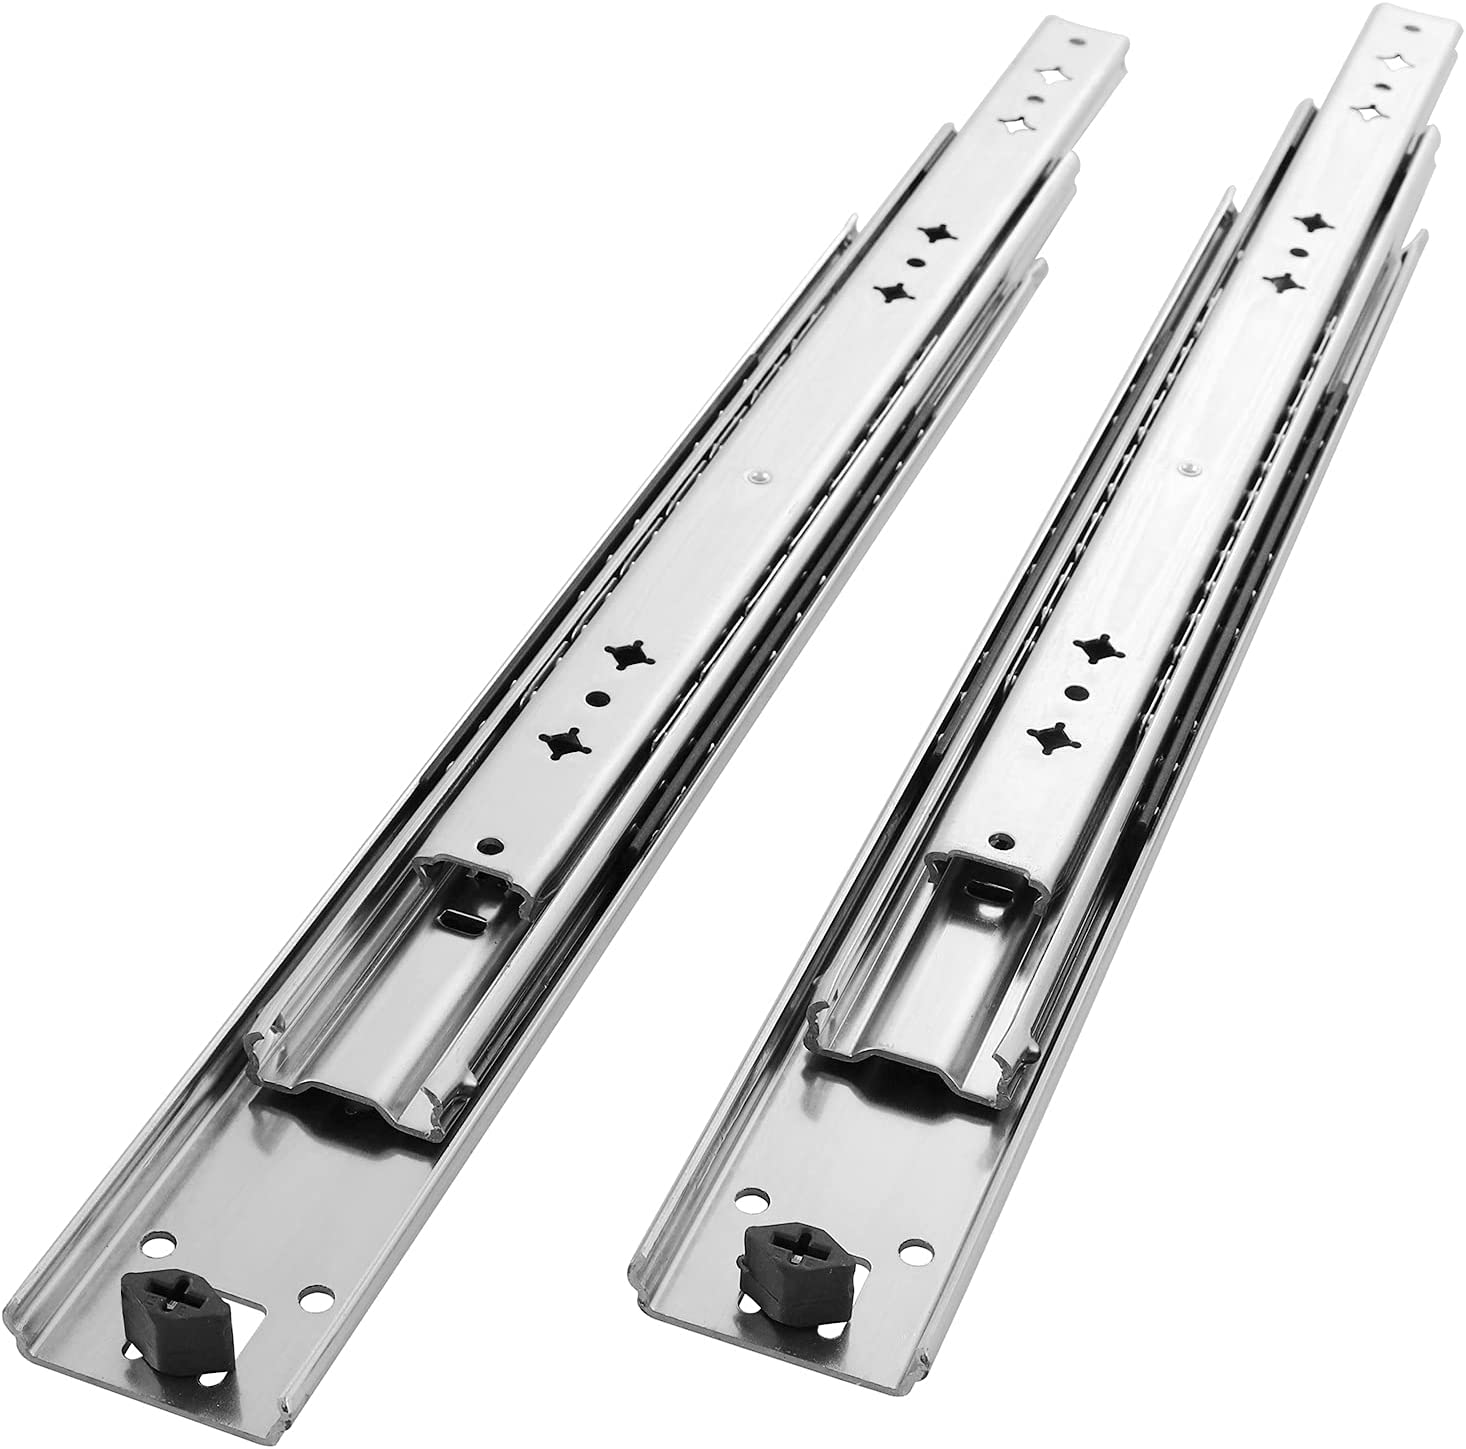 Betesy Hardware 1 Pair of 14 Inch l Ranking TOP14 Heavy 250 Special Campaign Slides Duty Drawer